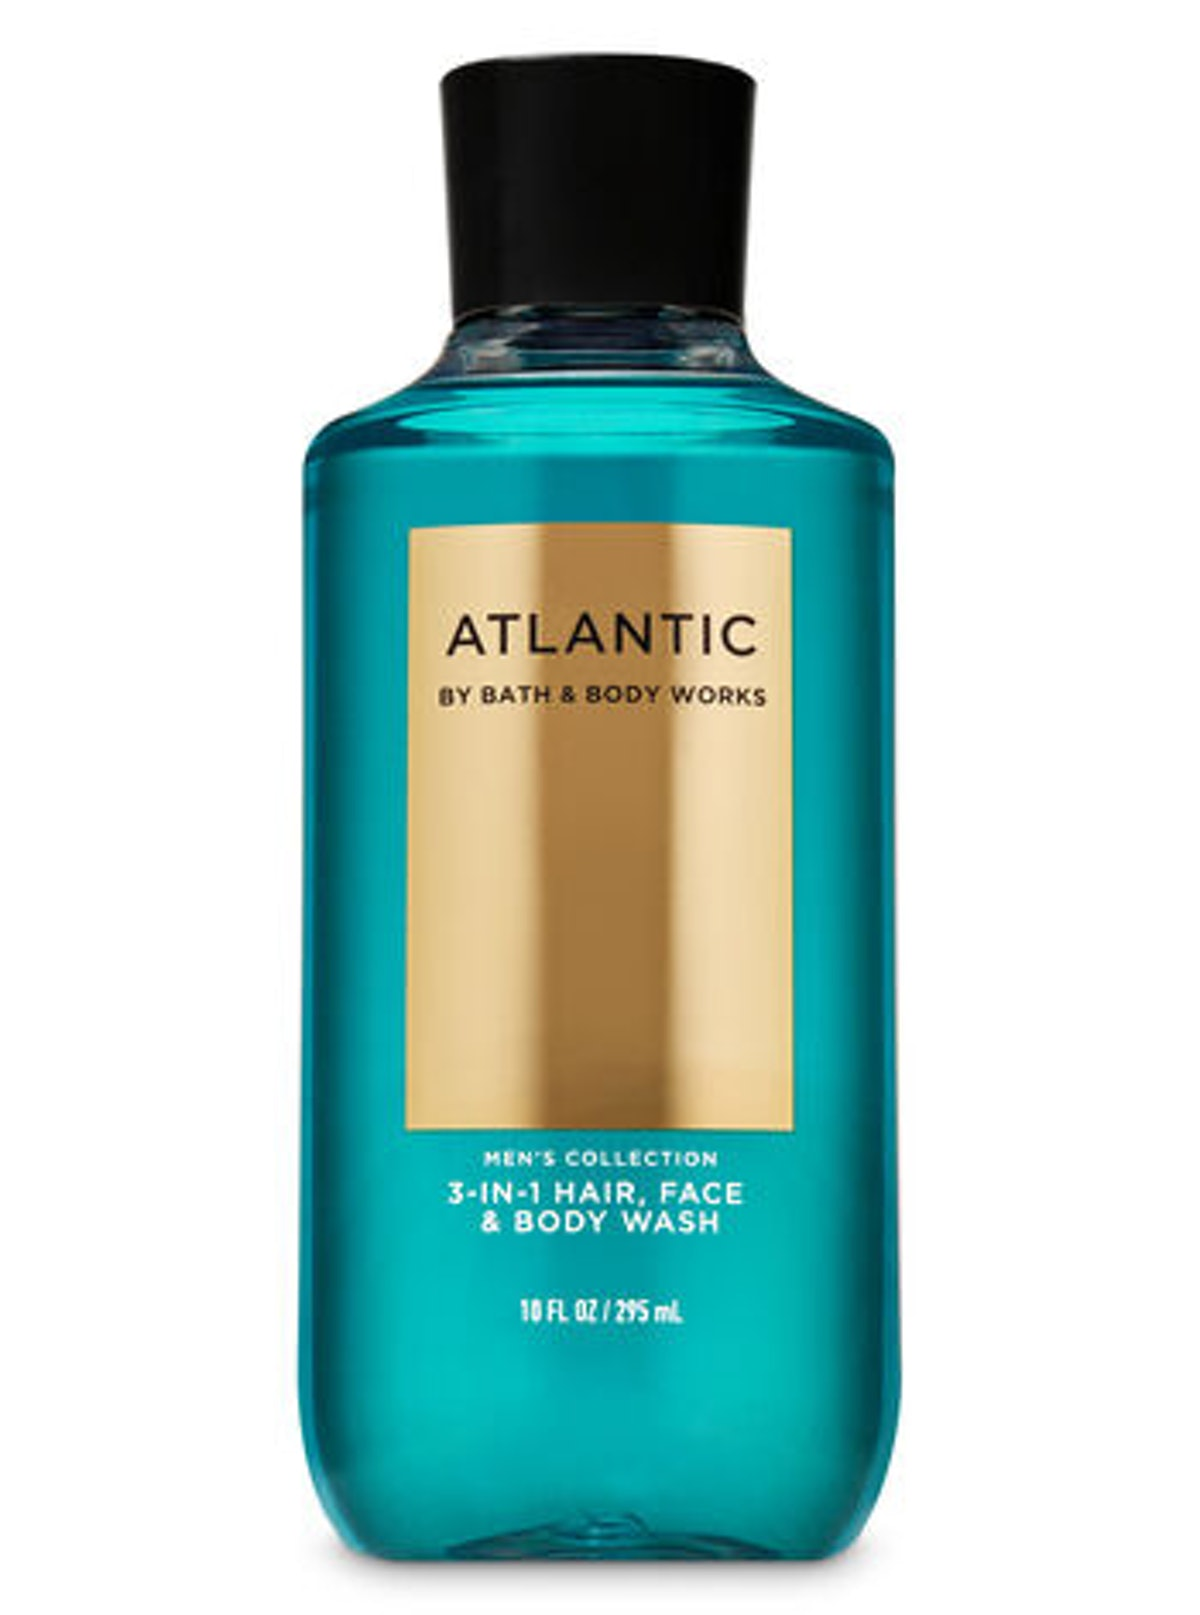 Atlantic 3-in-1 Hair, Face, and Body Wash